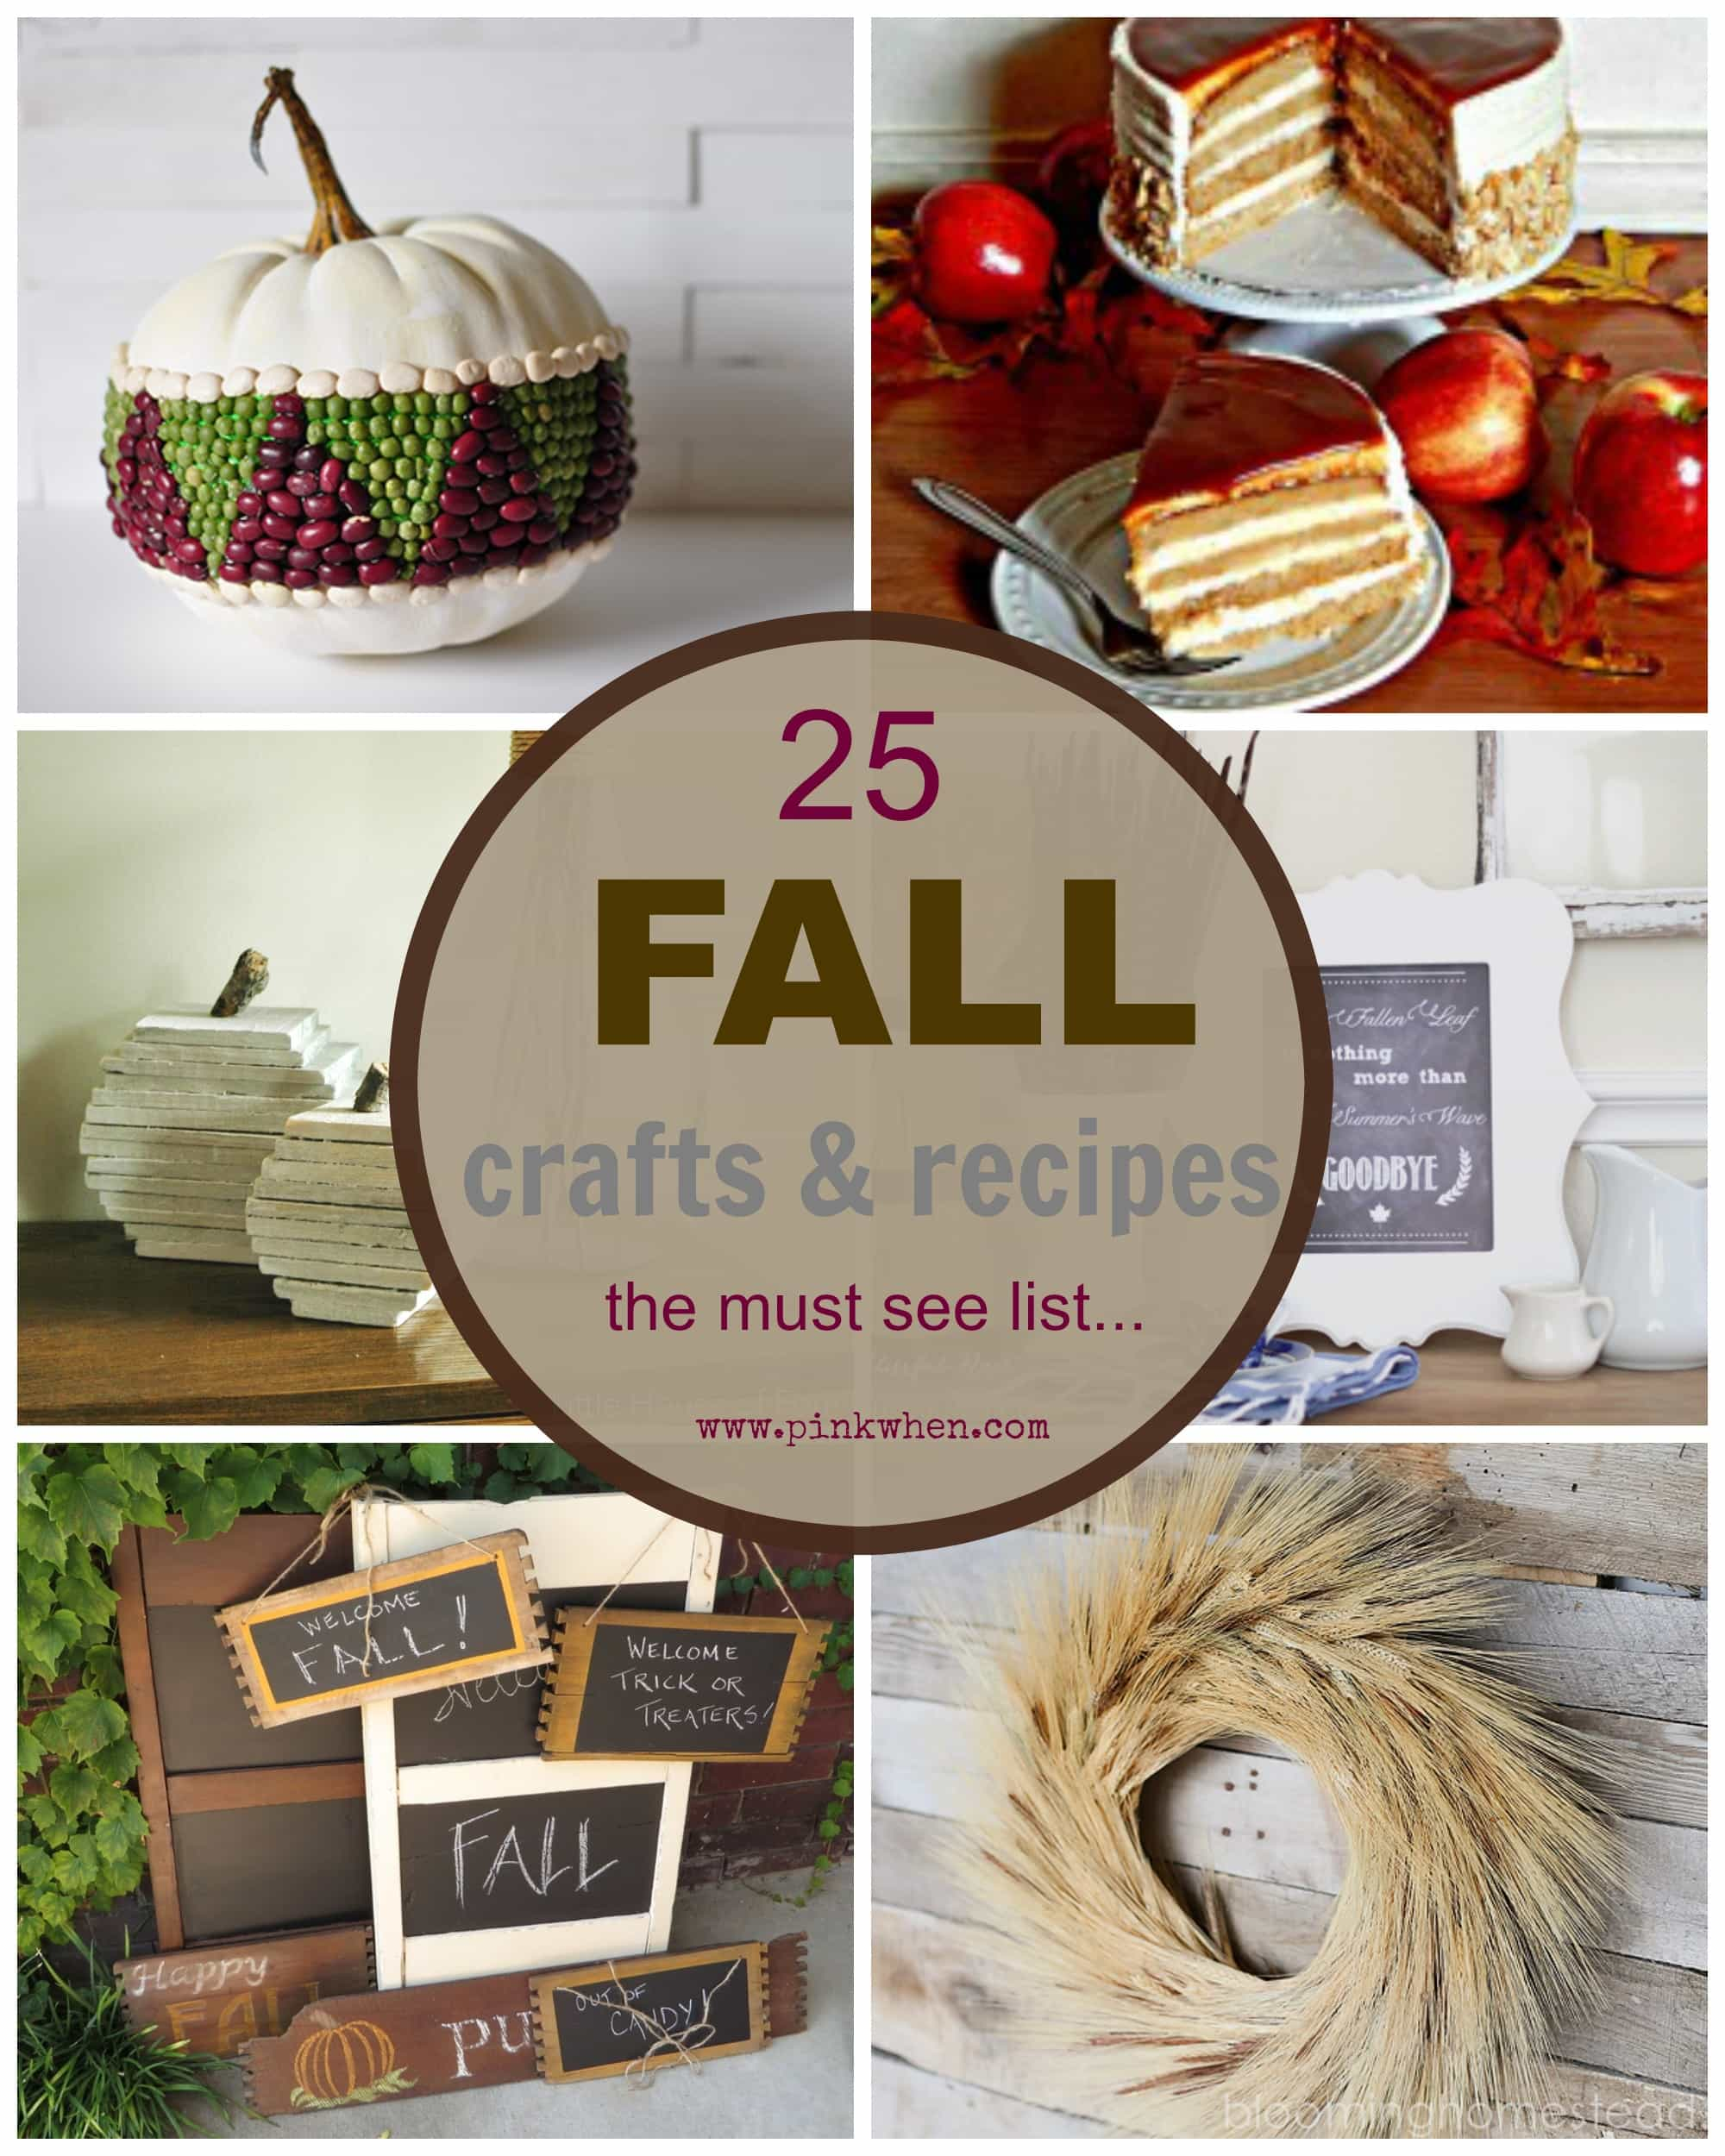 25 Fall Crafts & Recipes - The Must See and Must Have List for Fall - via PinkWhen.com